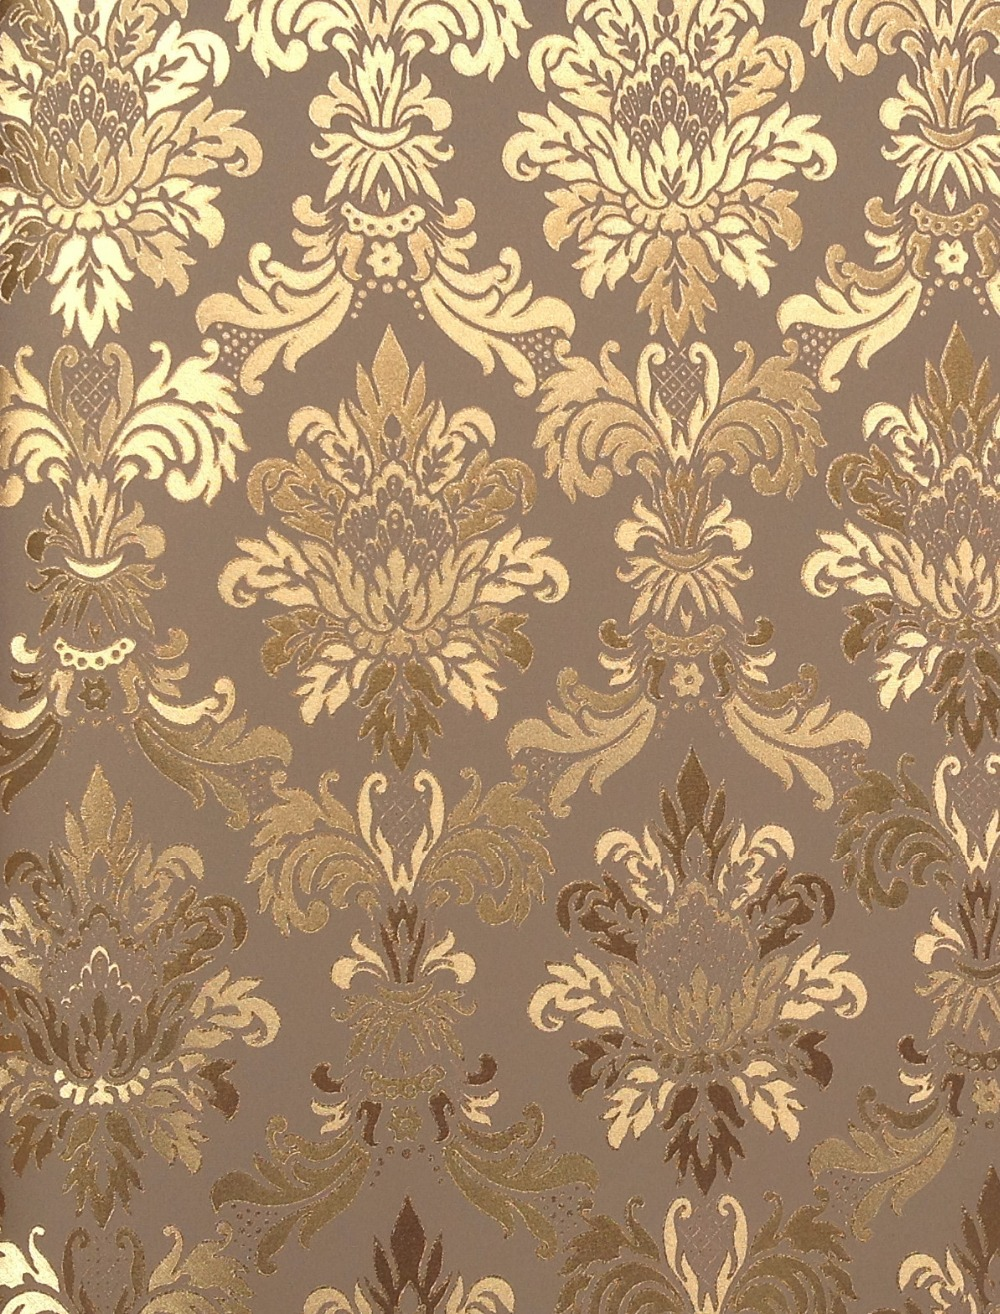 Cy222 Gold Foil Wall Paper Chinese Style Vinyl Wall Paper